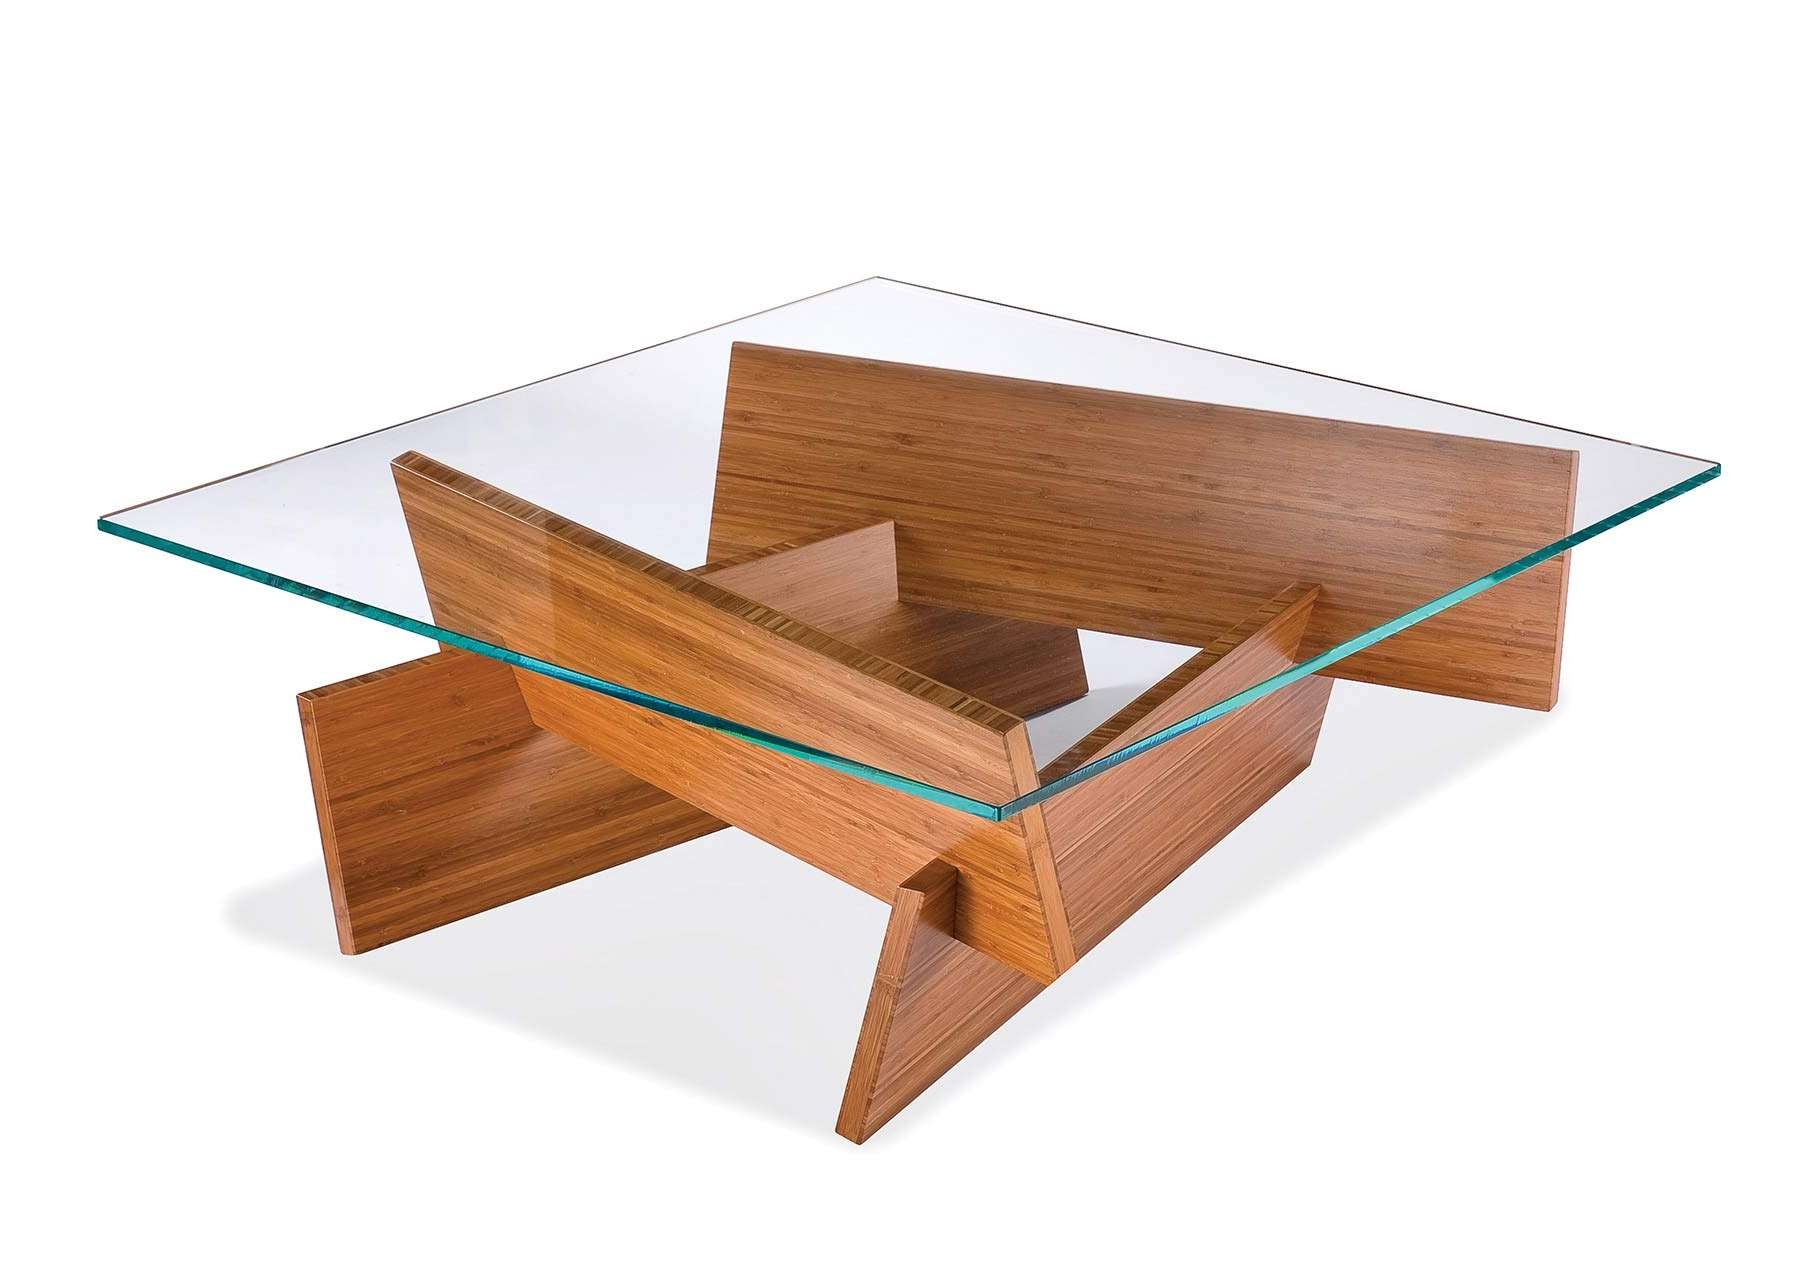 Famous Wooden And Glass Coffee Tables Regarding Glass Coffee Tables: Appealing Glass And Wood Coffee Tables Large (View 6 of 20)